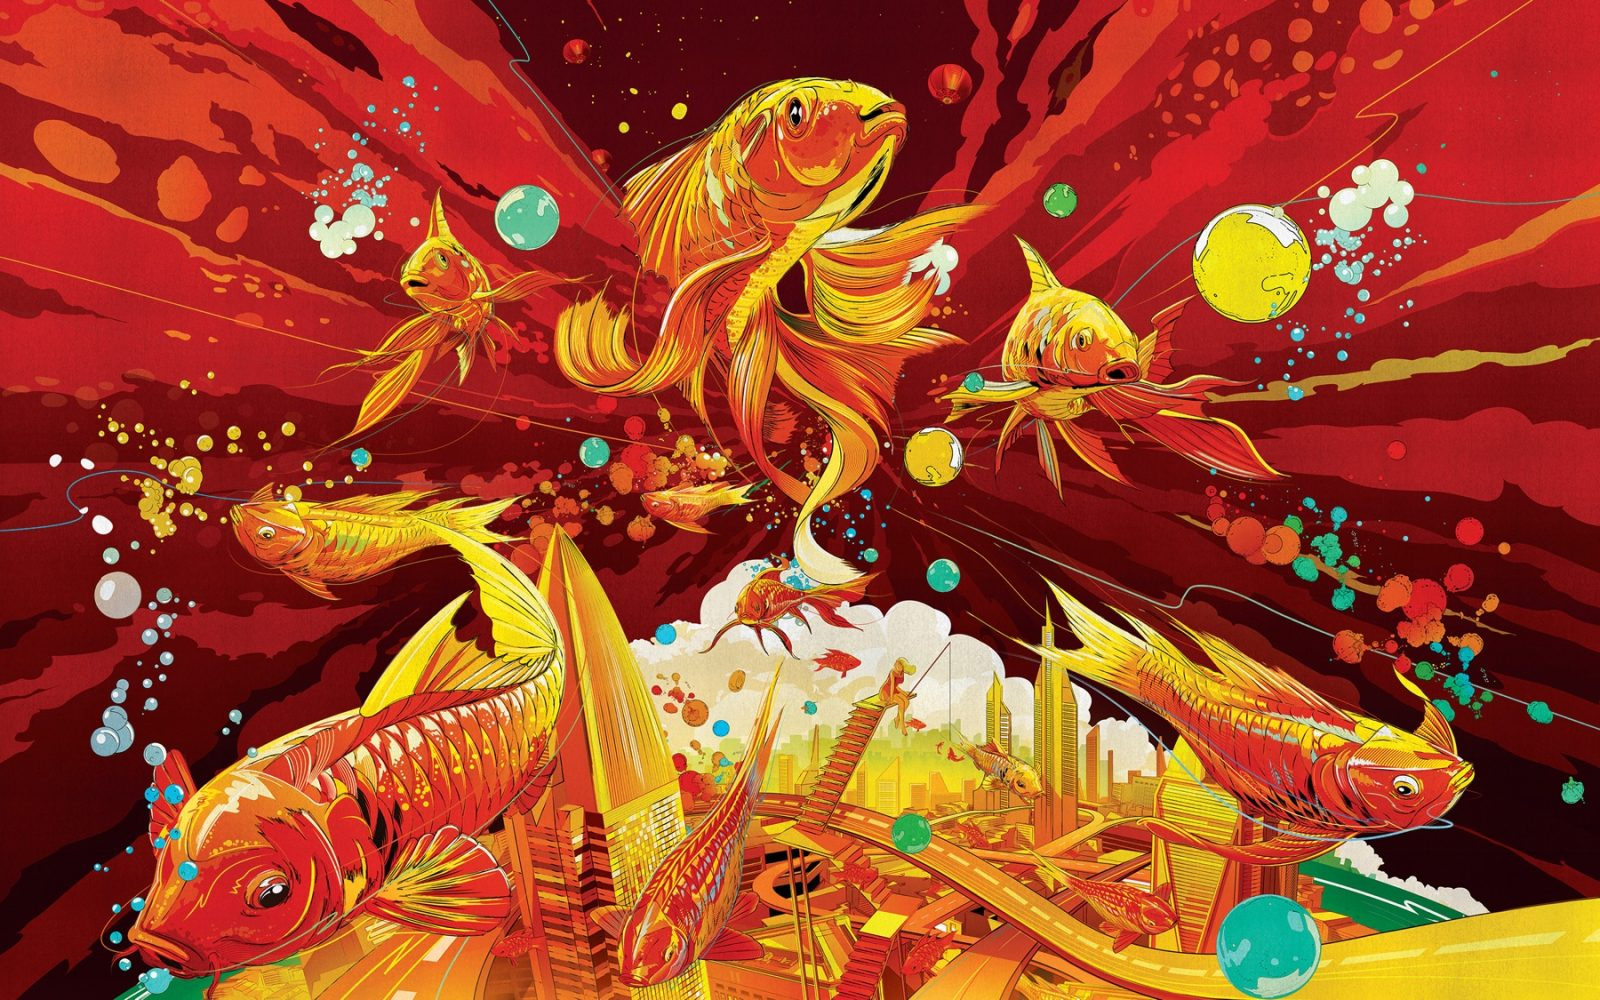 apple features artwork to celebrate the chinese new year with wallpapers for mac iphone and ipad